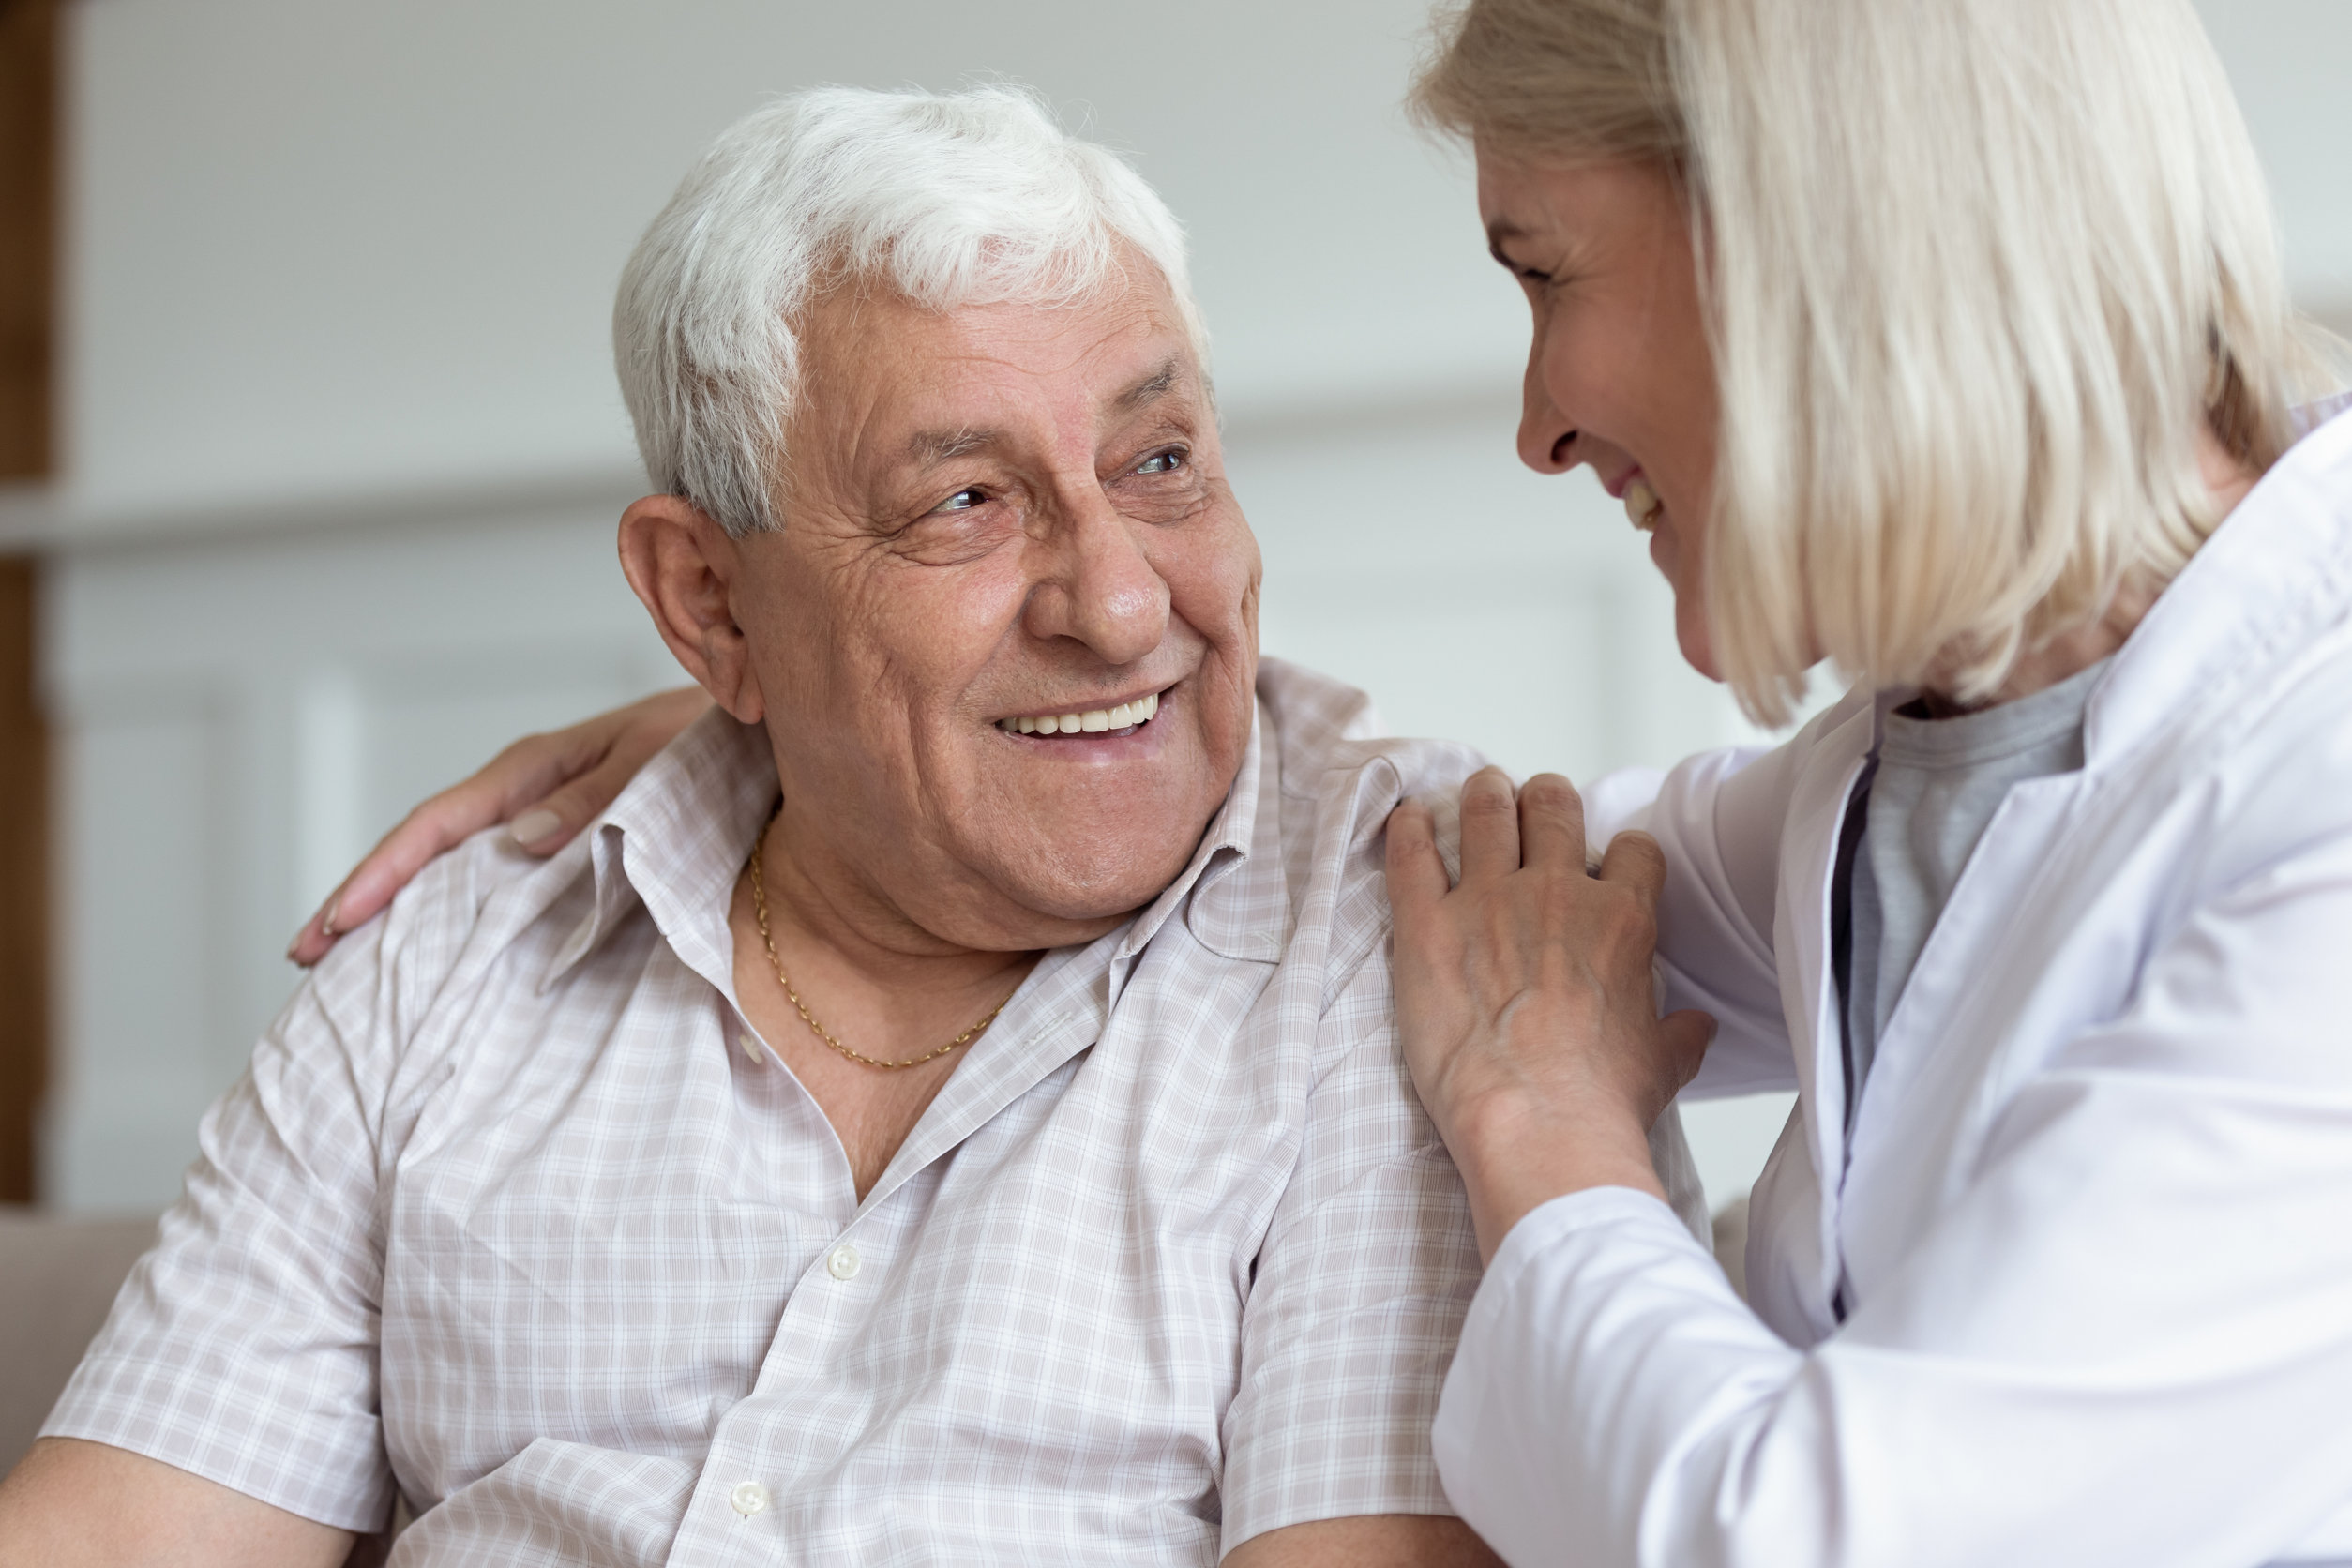 Effective communication in health and social care